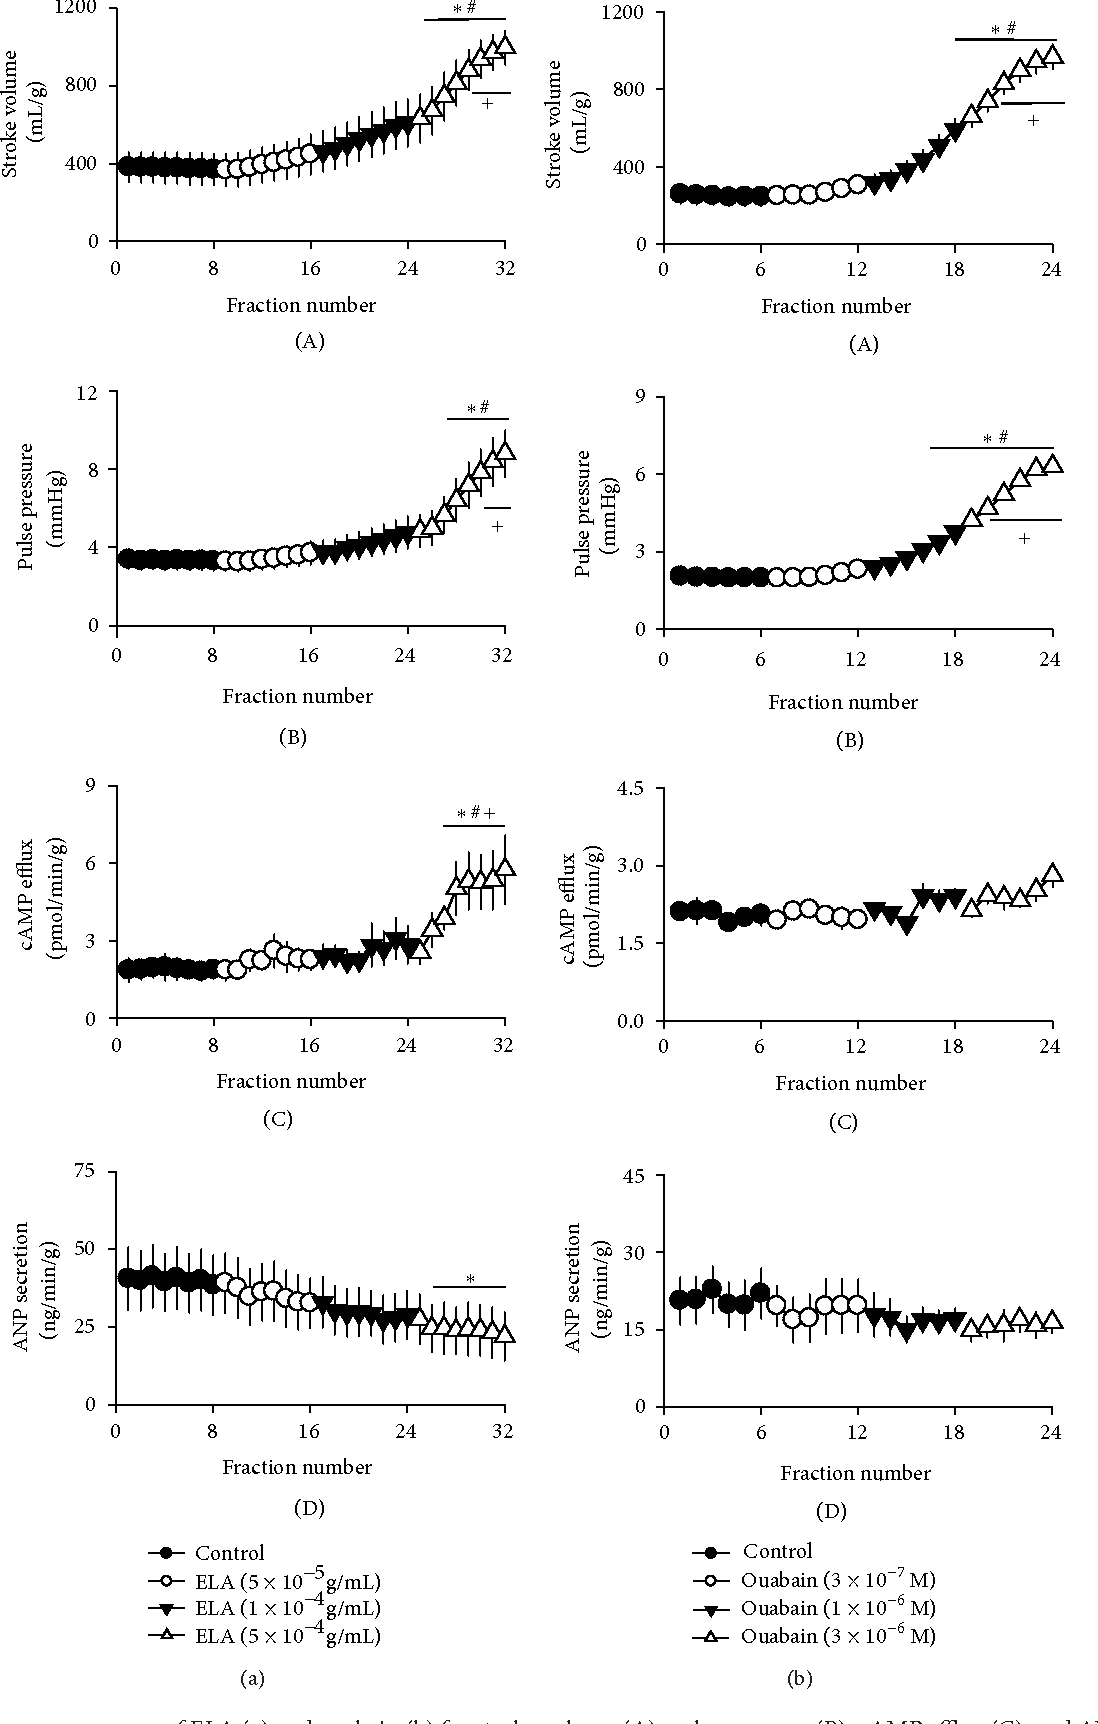 Figure 1: Dose-response curves of ELA (a) and ouabain (b) for stroke volume (A), pulse pressure (B), cAMP efflux (C), and ANP secretion (D) in beating rabbit atria. Values shown are mean ± SE (𝑛 = 4); +𝑃 < 0.05 versus control; ∗∗𝑃 < 0.01 versus ELA (5 × 10−5 g/mL) or ouabain (3 × 10−7 M); ###𝑃 < 0.001 versus ELA (1 × 10−4 g/mL) or ouabain (1 × 10−6 M) (compared with values for the last 3 fractions of control).